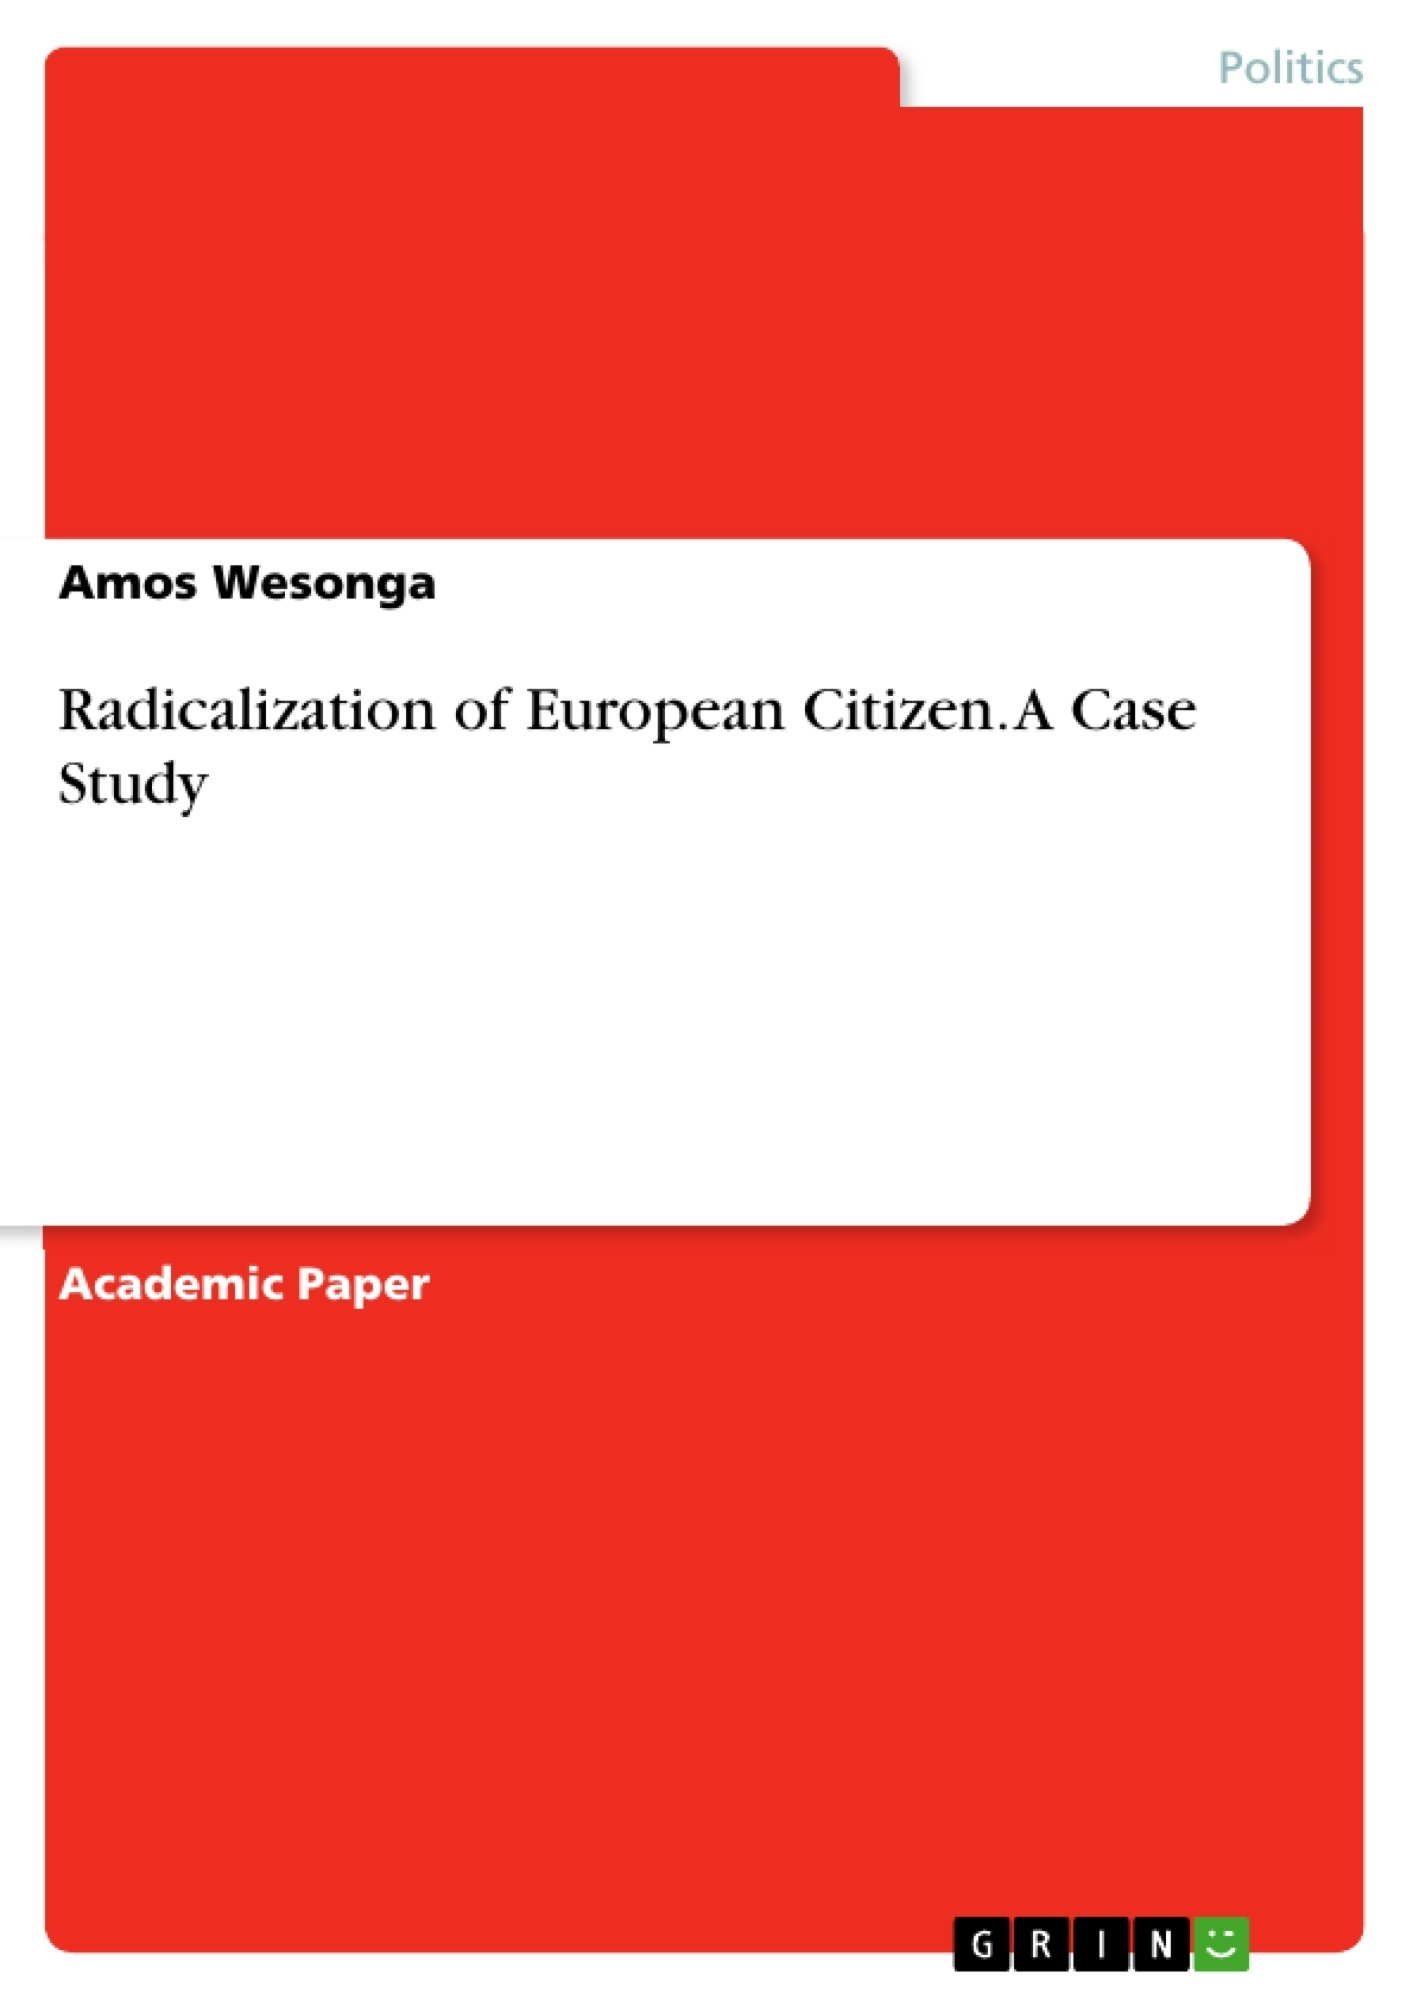 Title: Radicalization of European Citizen. A Case Study